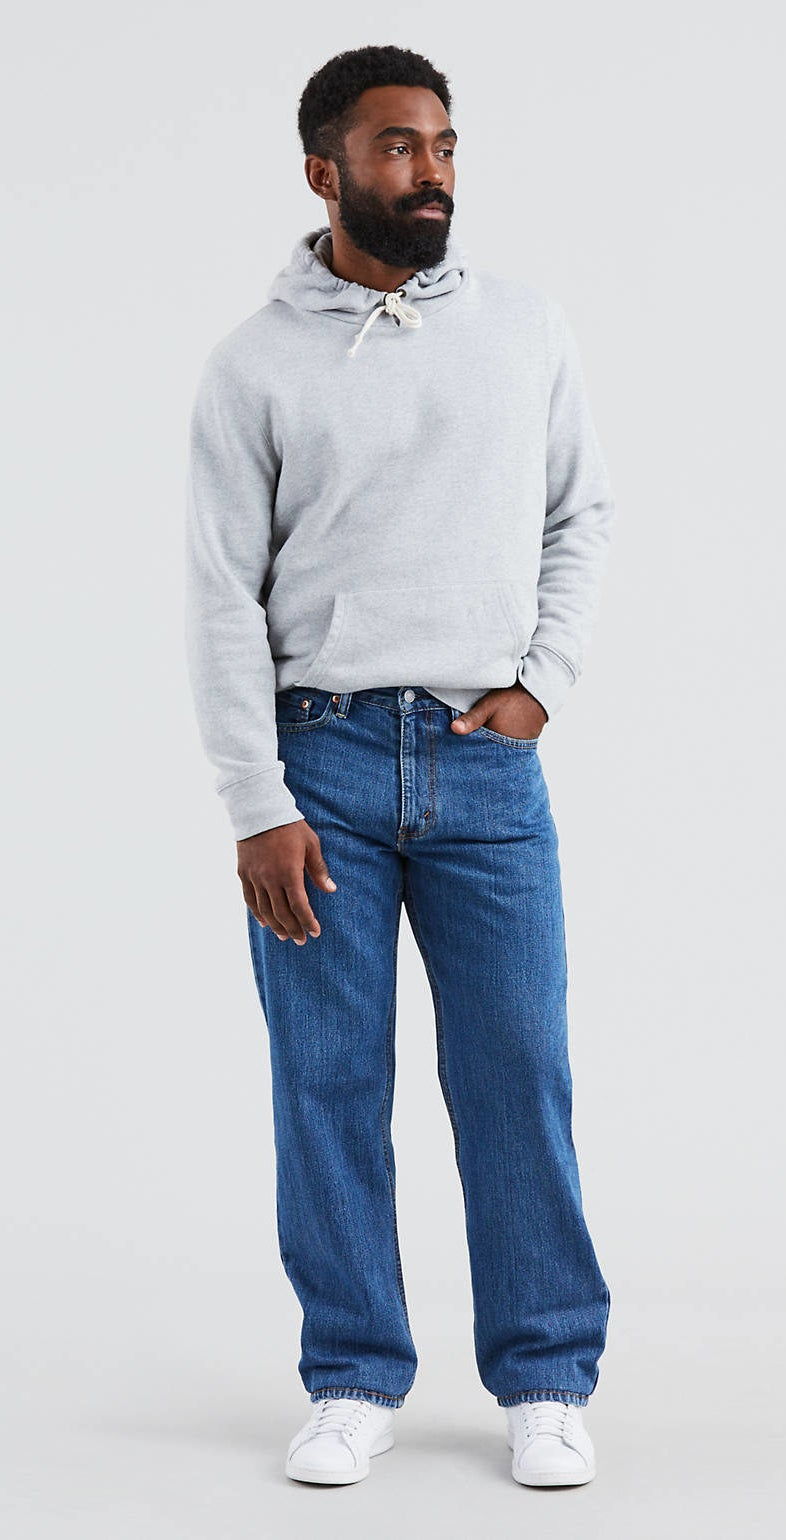 a model wearing the pants in stonewash